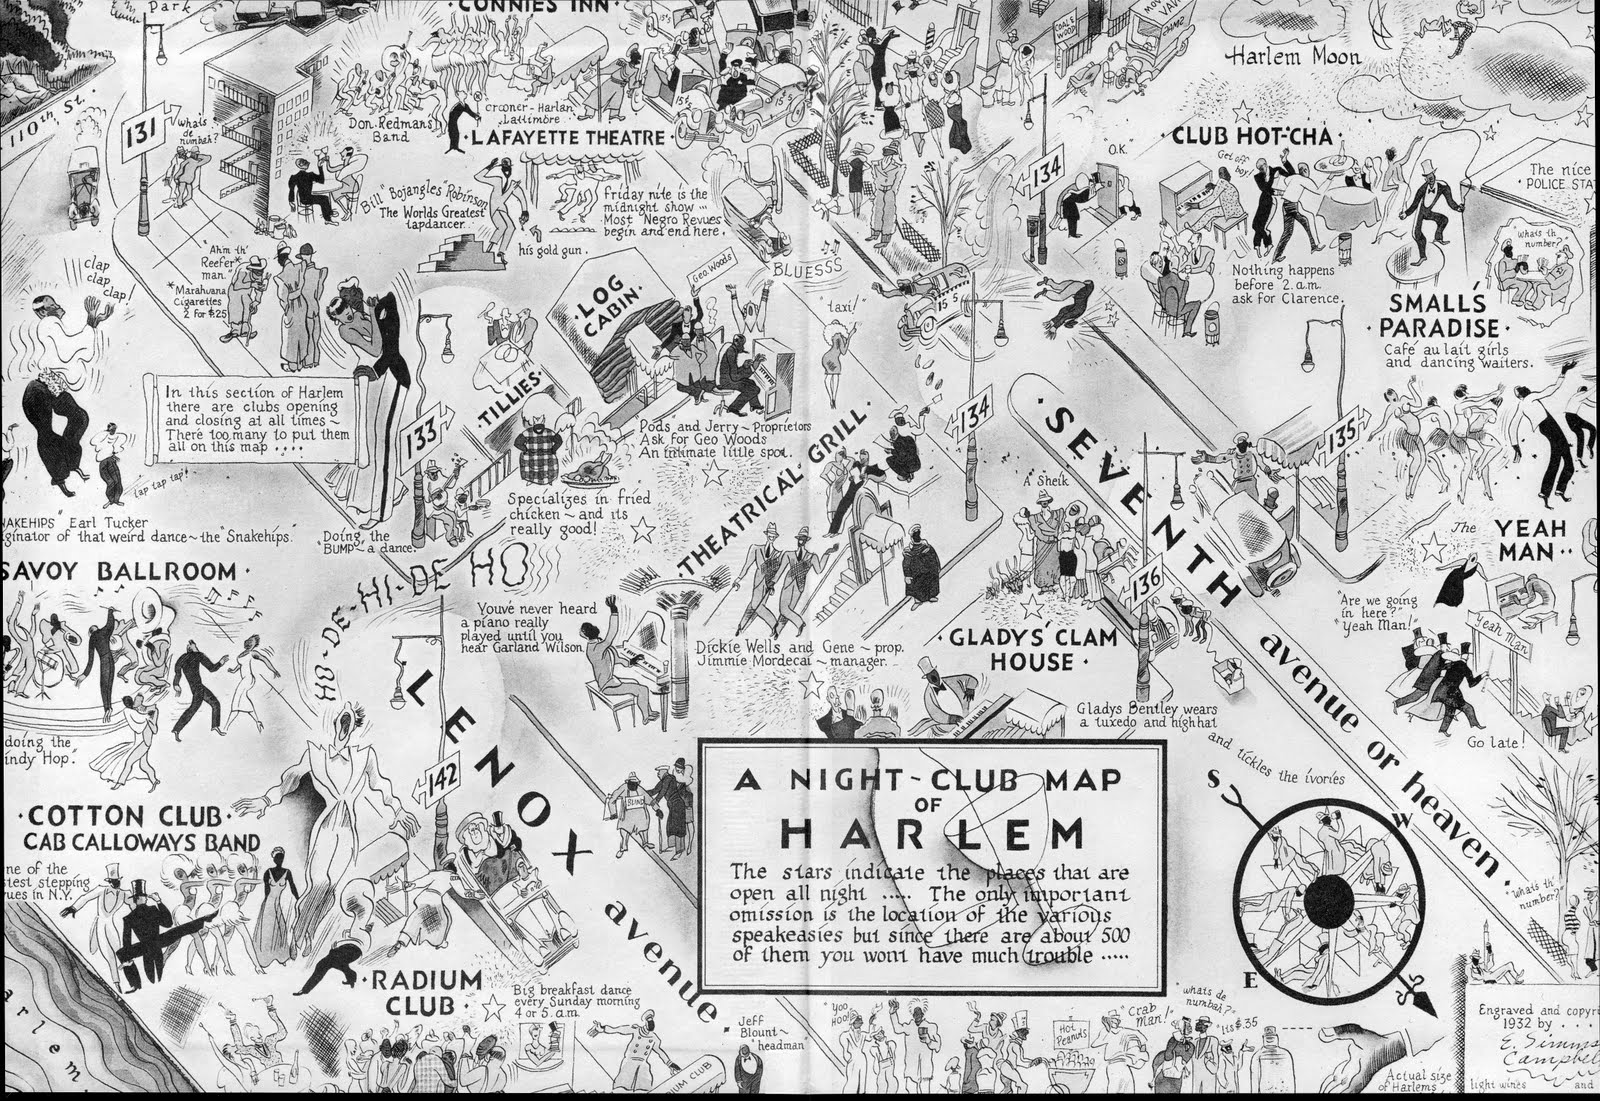 map-harlem-1932